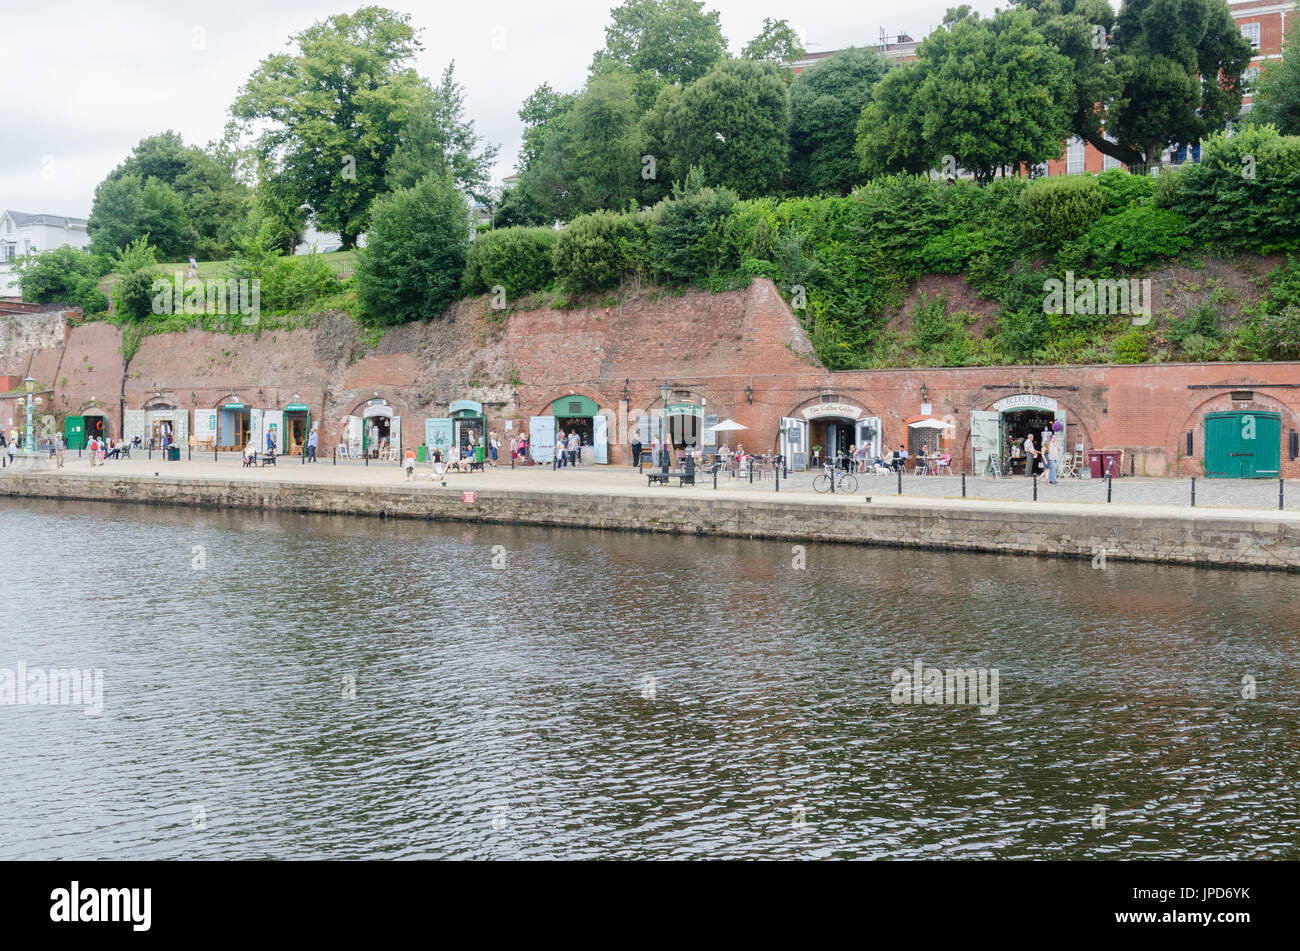 Shops and restaurants on The Quay on the bank of the River Exe in Exeter, Devon Stock Photo